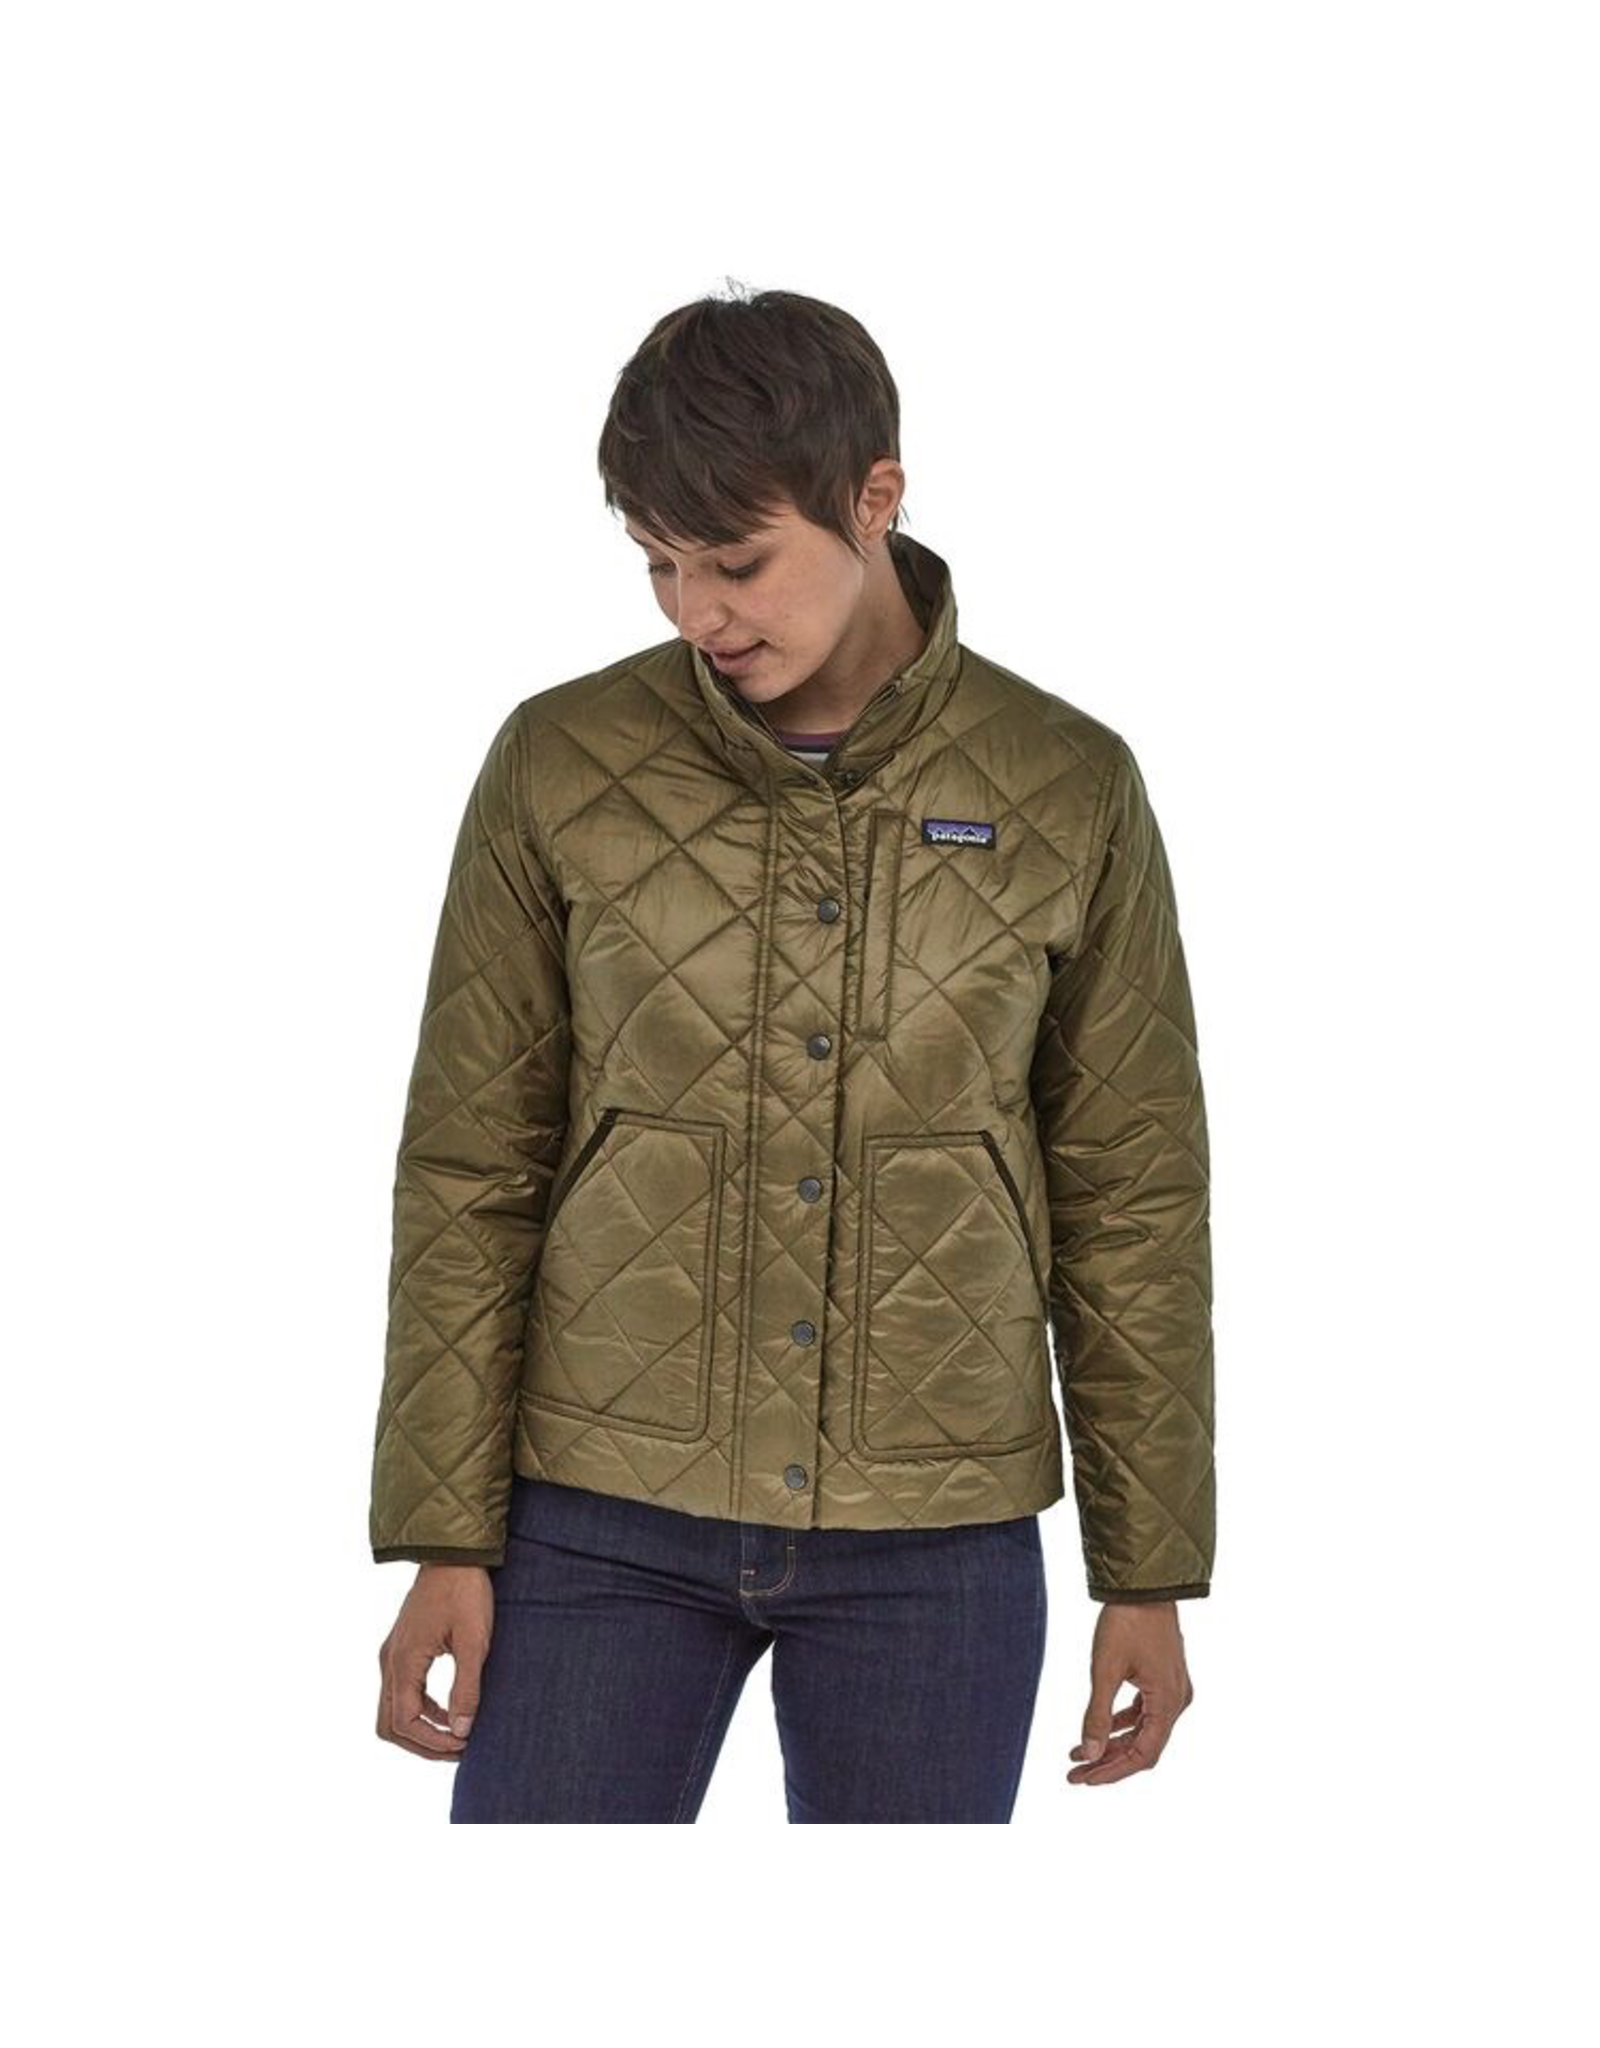 A field jacket best suited for working in transitional weather; lightly insulated with 60-g THERMOLITE® ECO92 and Fair Trade Certified™ sewn.